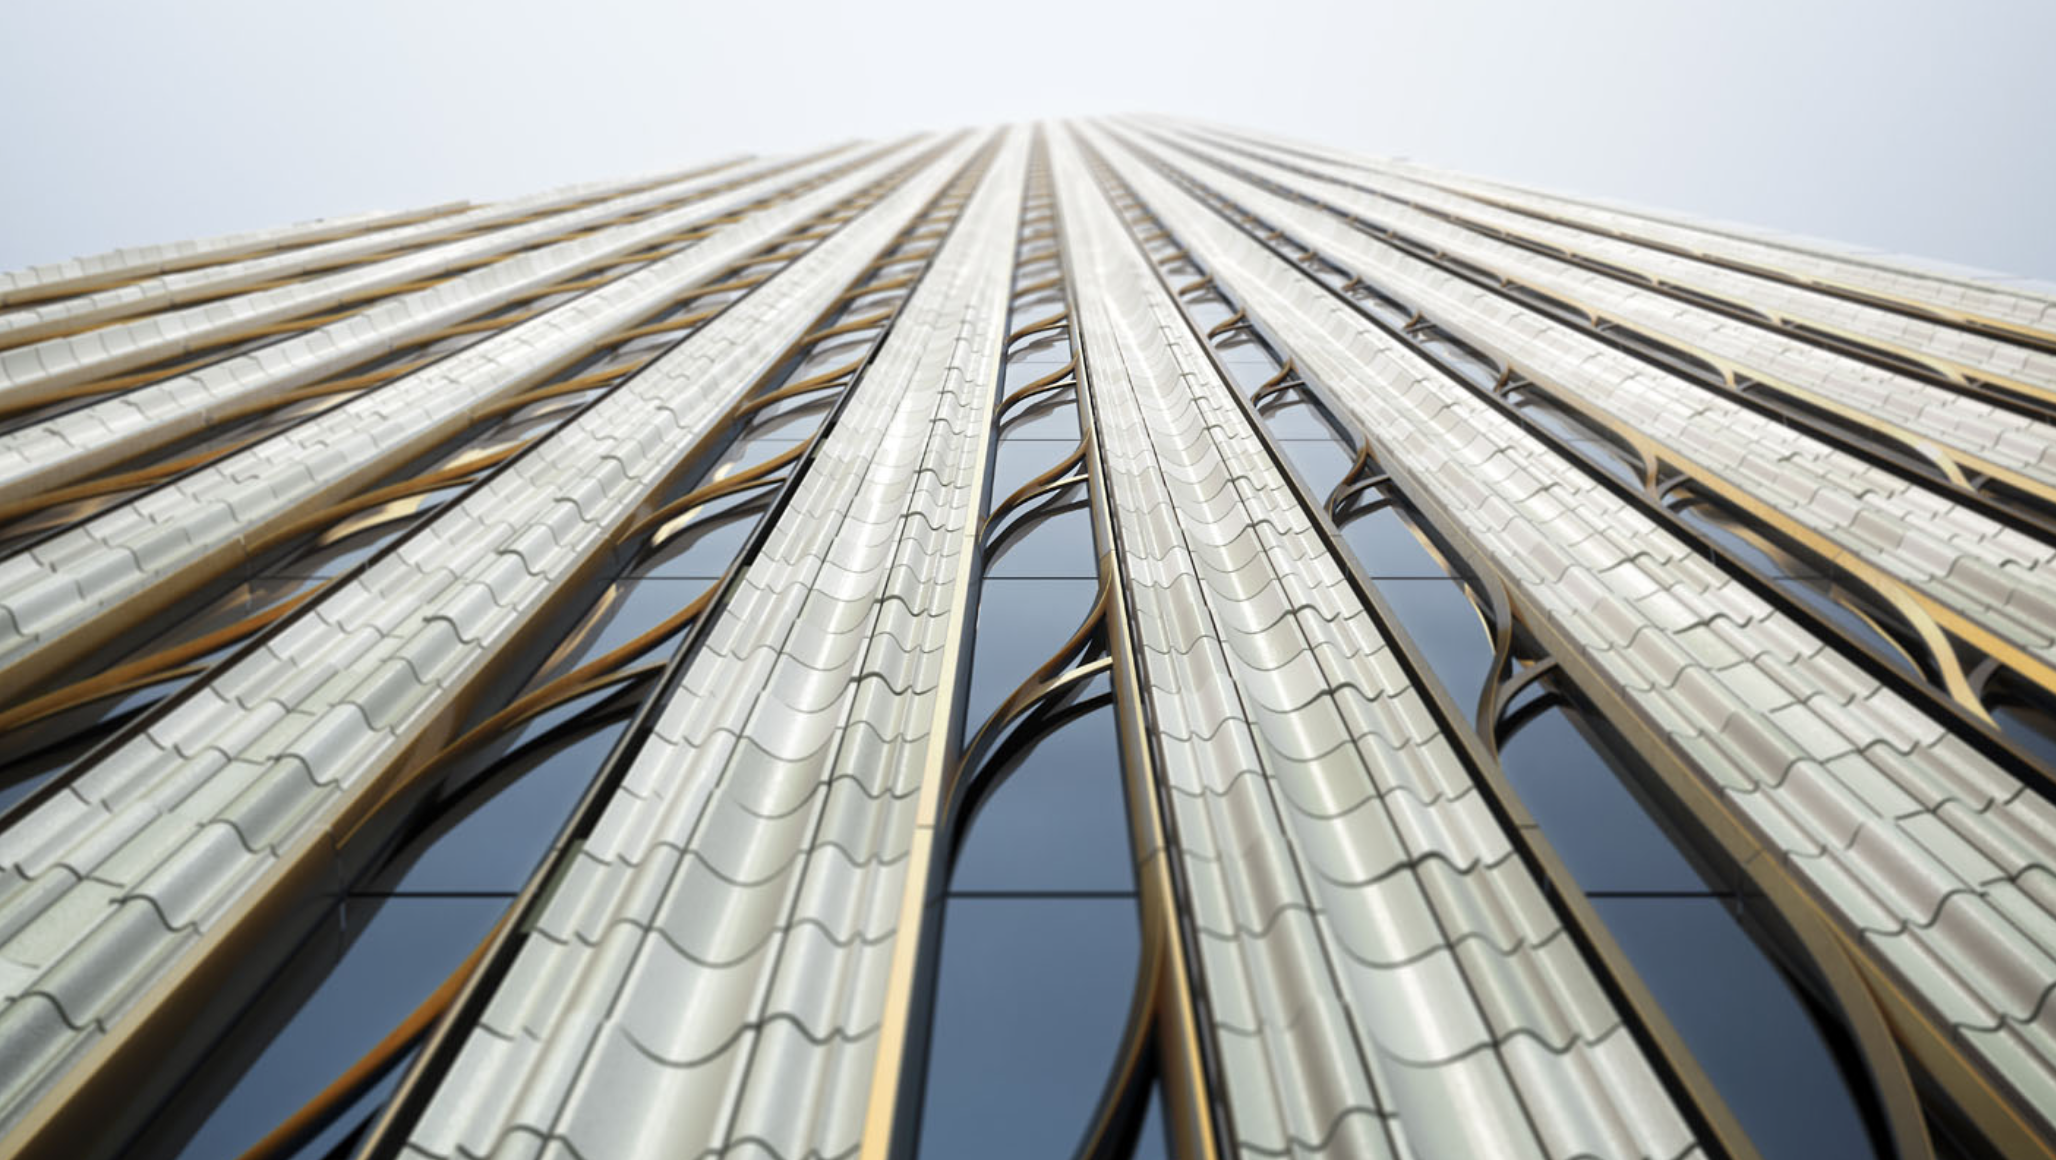 Construction Update: Steinway Hall's Restored Facade Revealed at 111 West 57th Street as Construction Progress' at The World's Skinniest Supertall